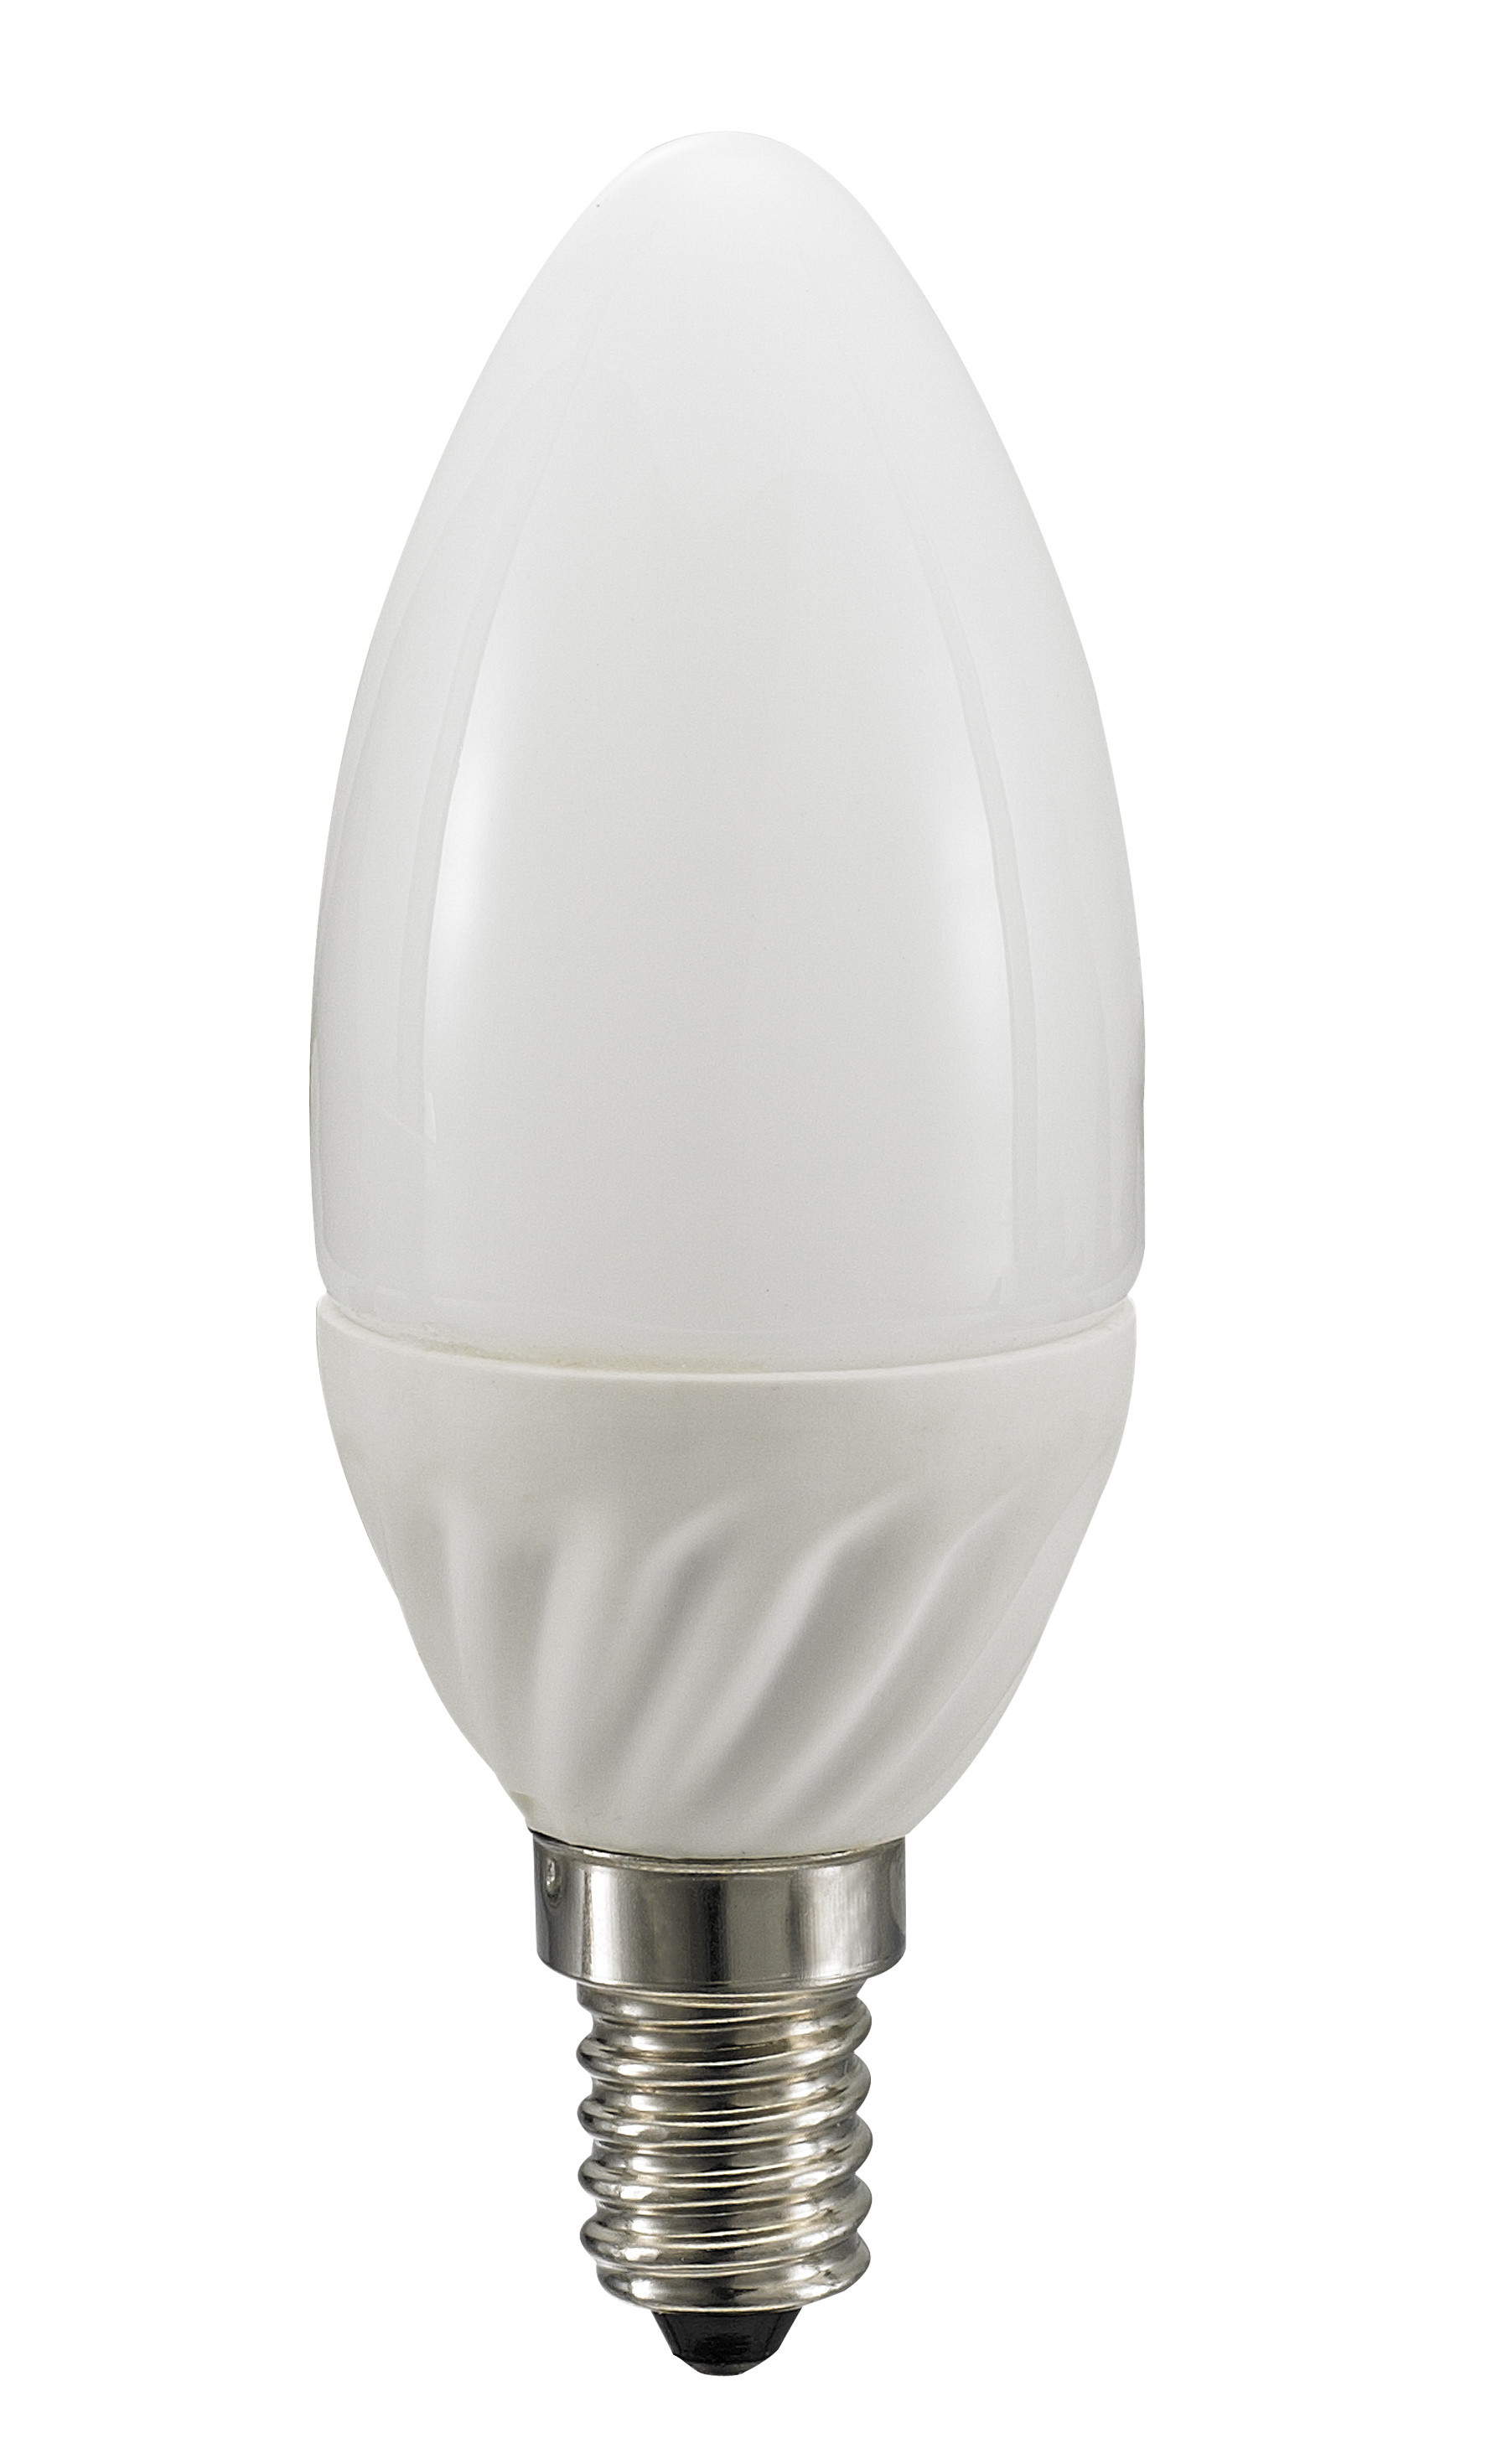 Image of   Civilight LED kertepære - E14 - Ra 97 - 4 watt (25W)